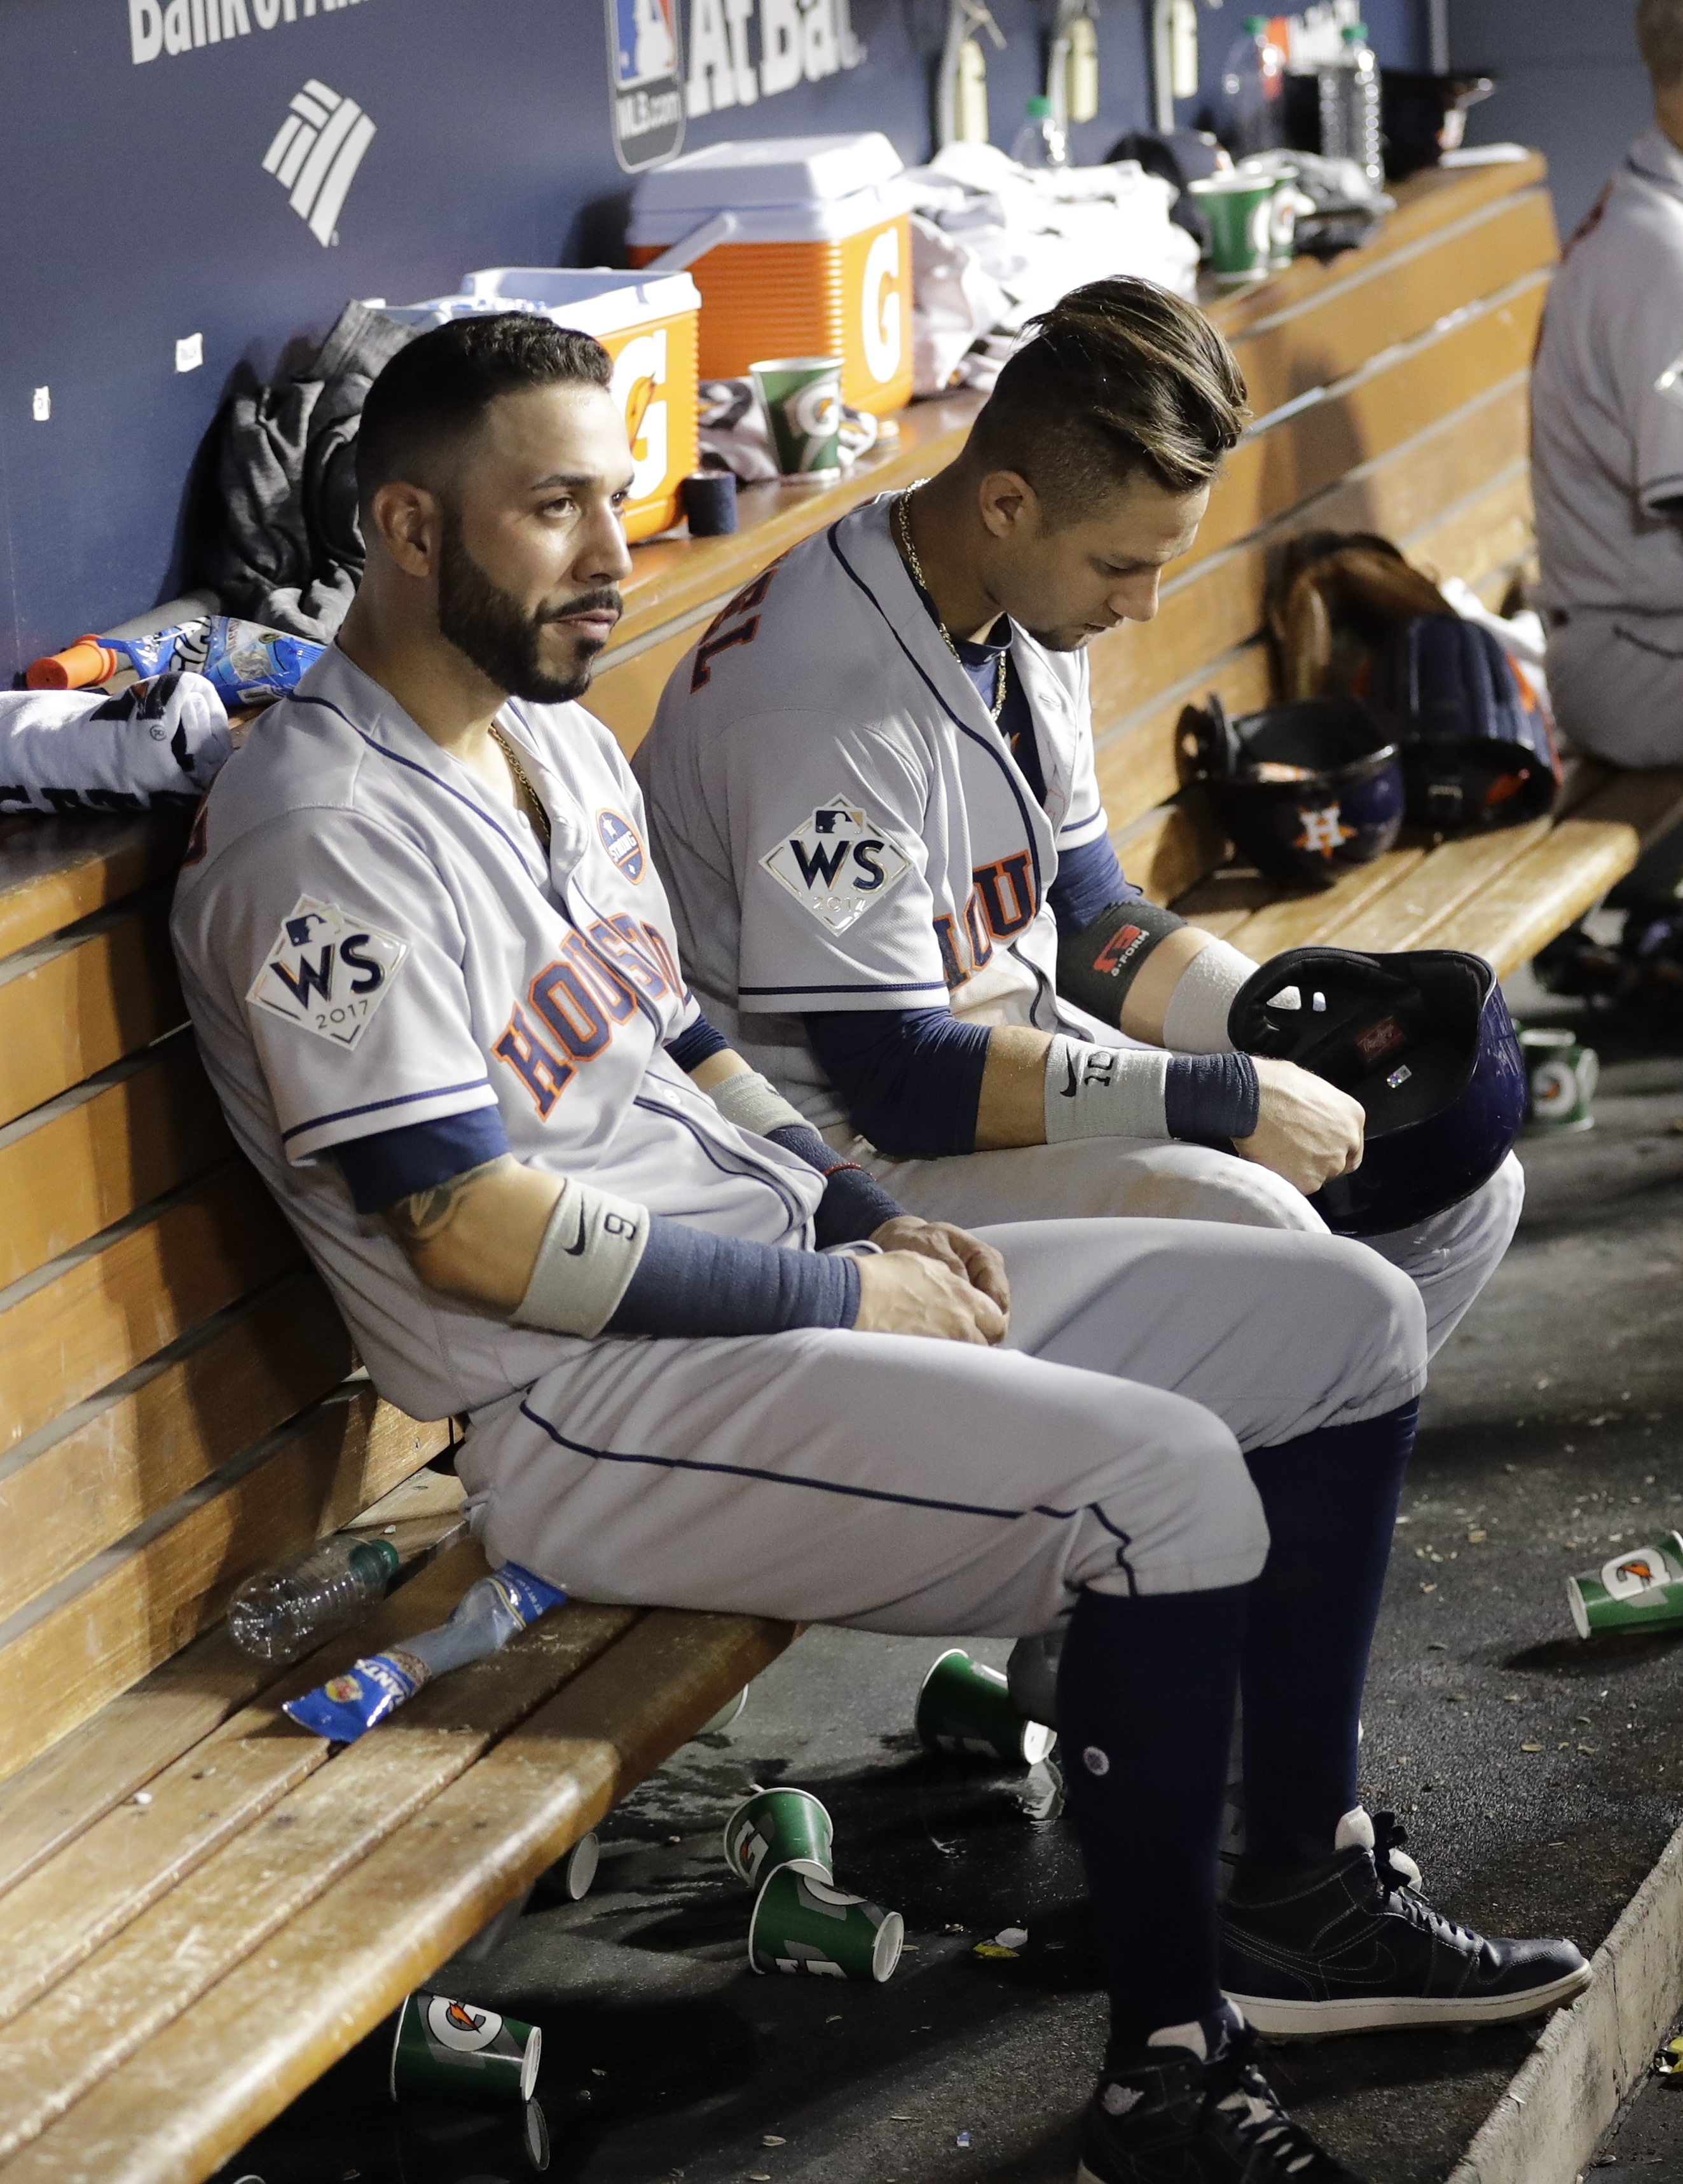 Houston Astros' Yuli Gurriel and Marwin Gonzalez sit on the bench during the ninth inning of Game 1 of baseball's World Series against the Los Angeles Dodgers Tuesday, Oct. 24, 2017, in Los Angeles. (AP Photo/David J. Phillip)